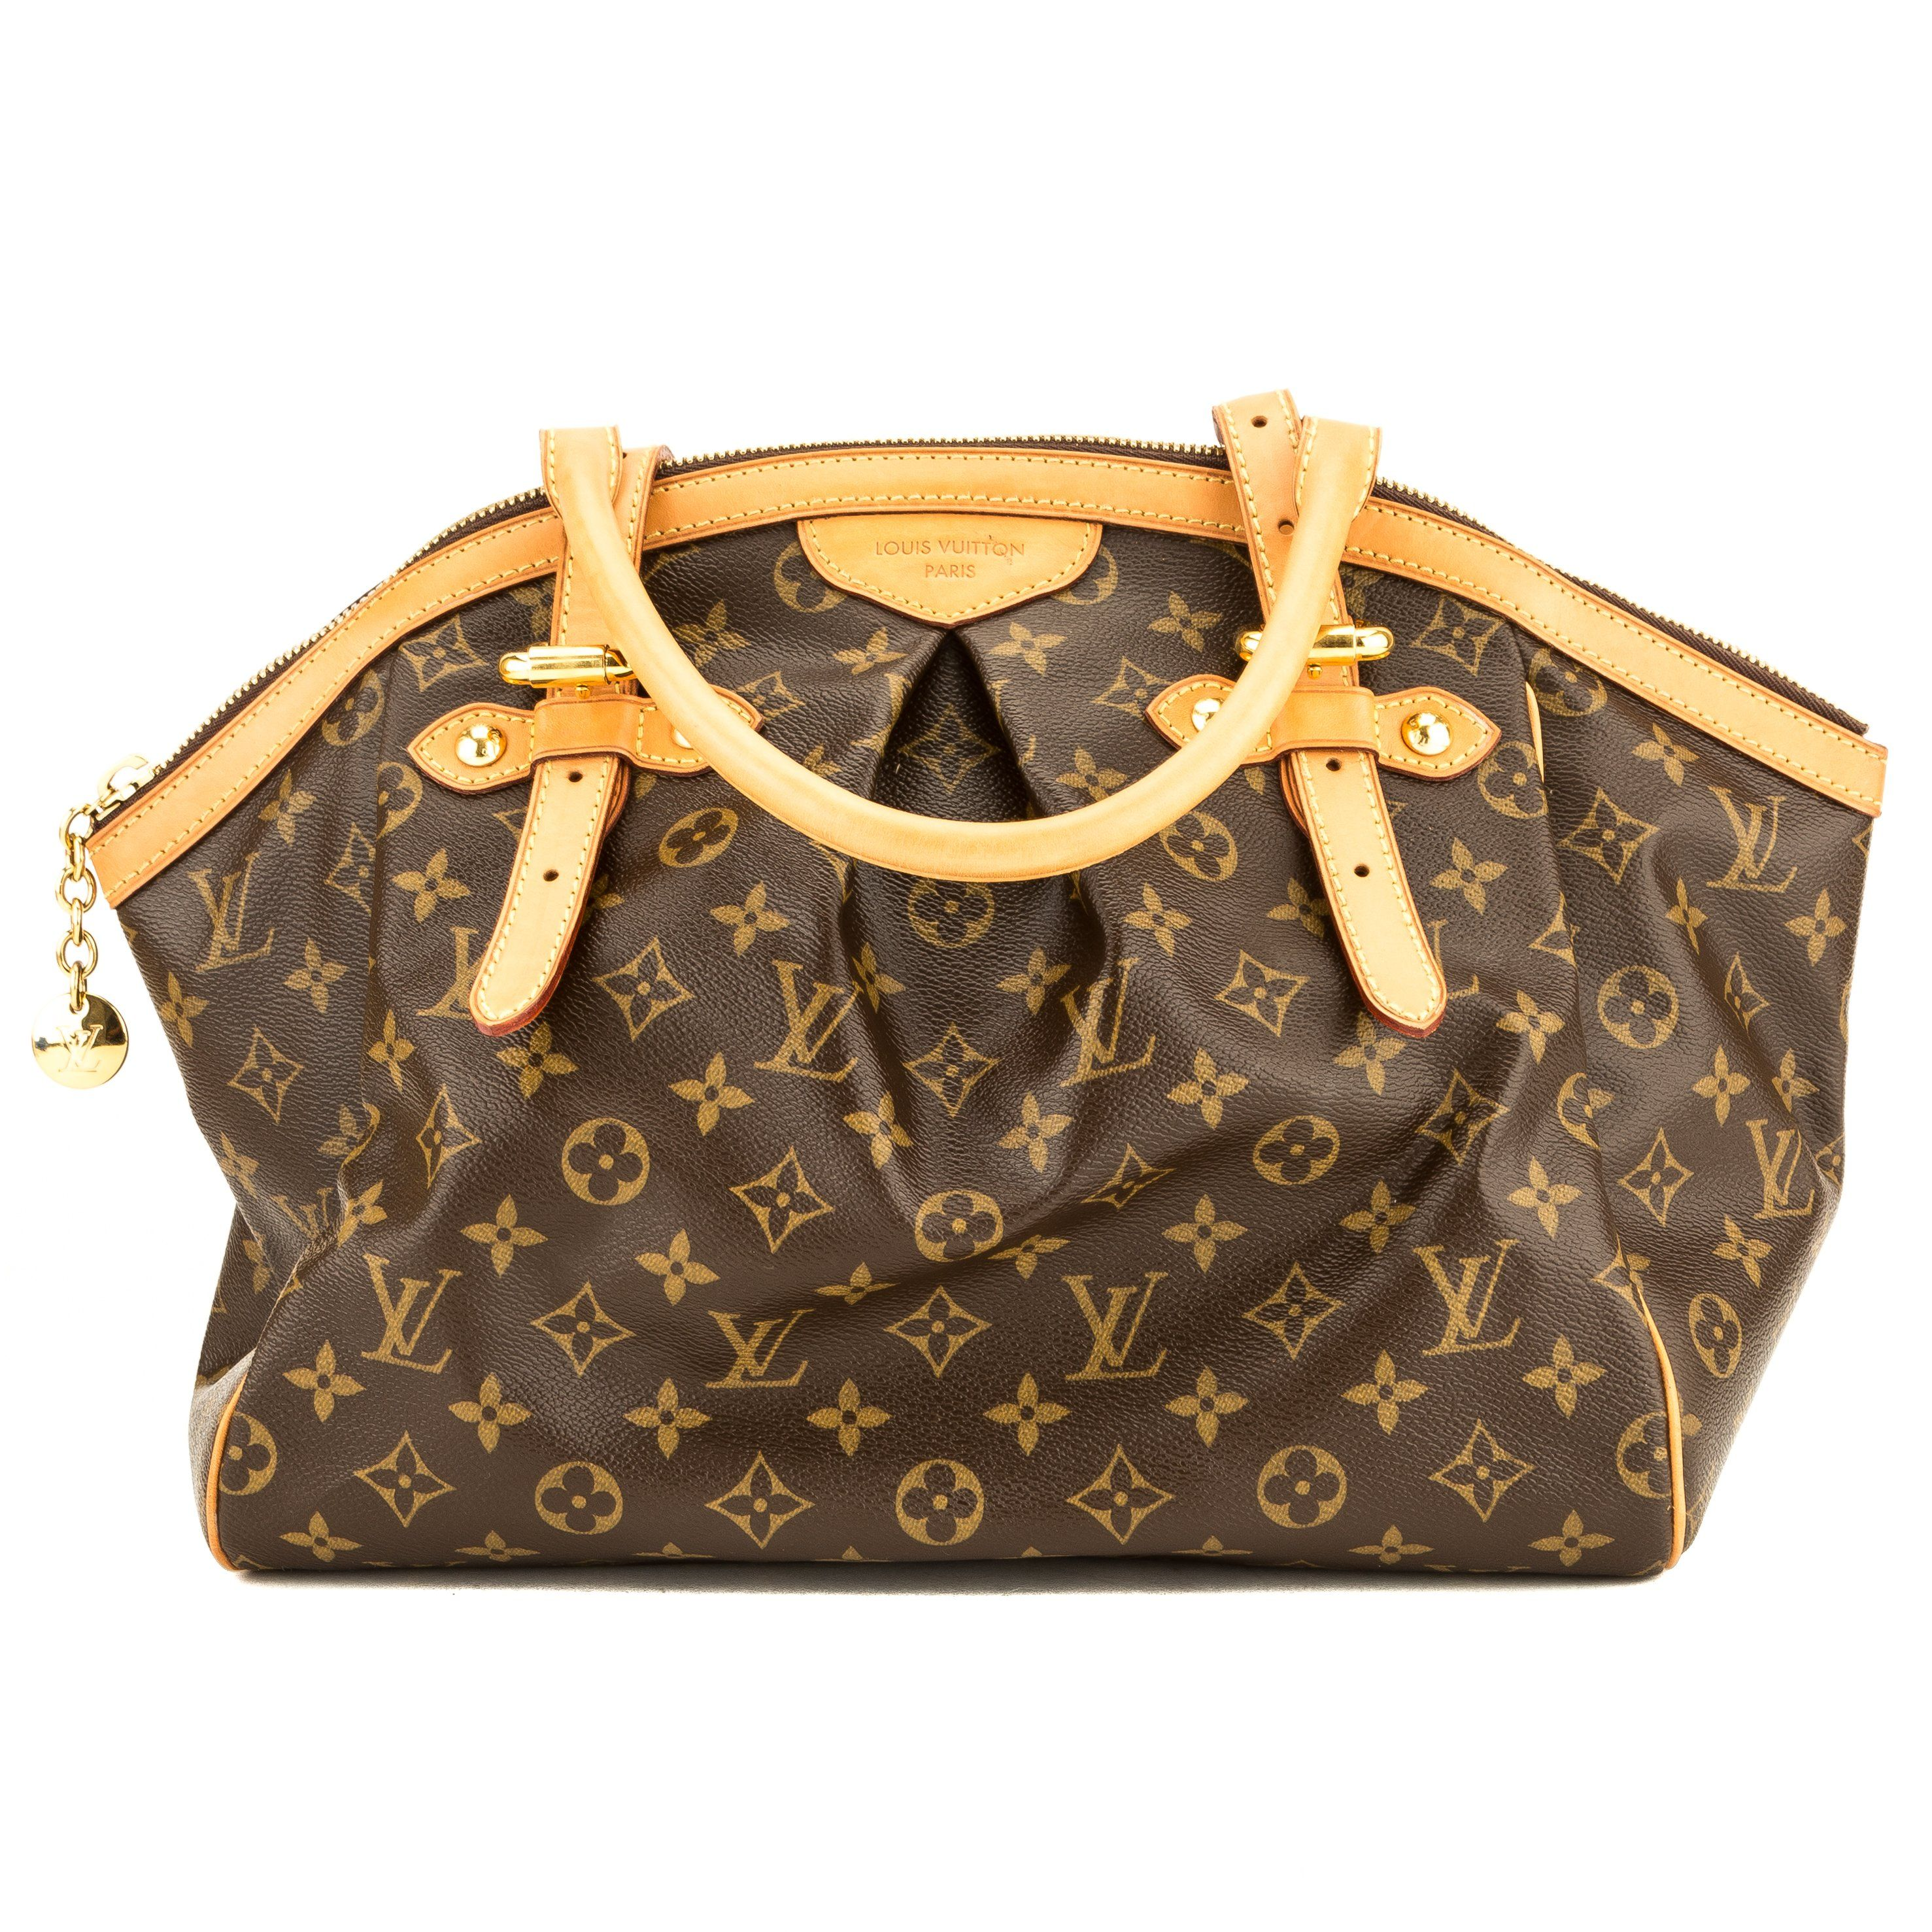 Louis Vuitton Tivoli Vs Palermo Louis Vuitton Monogram Canvas Tivoli Gm Bag 3913019